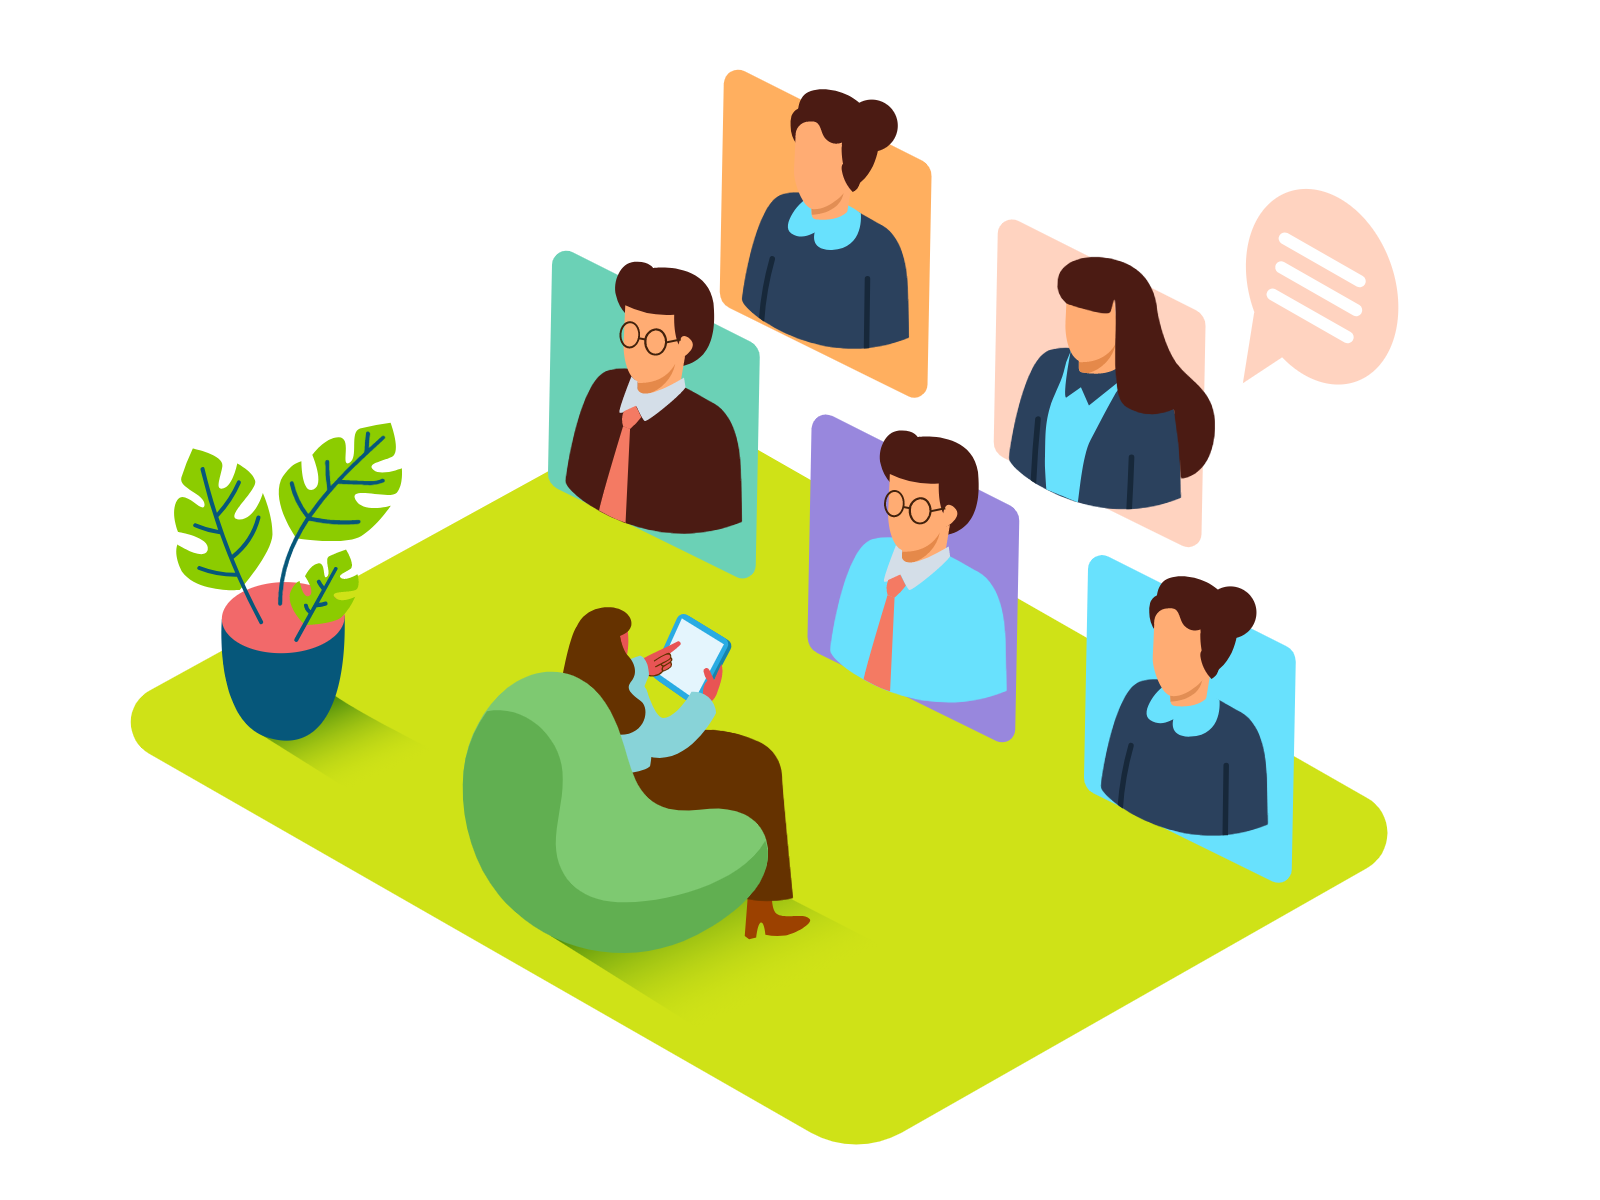 an isometric image of a person sitting in a chair, meeting with others virtually